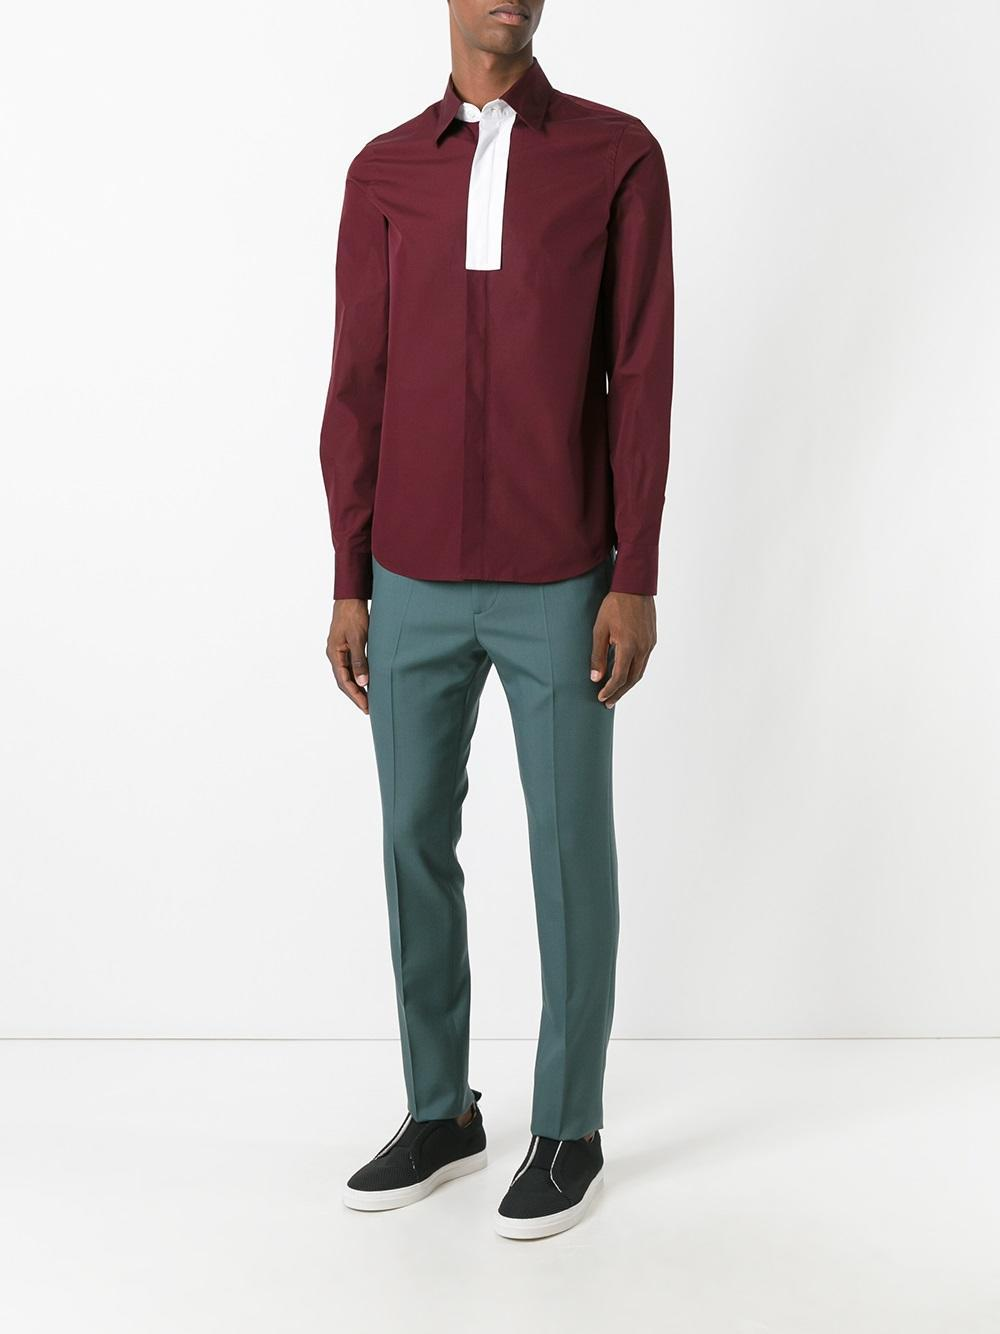 Marni Wool Tailored Trousers in Green for Men